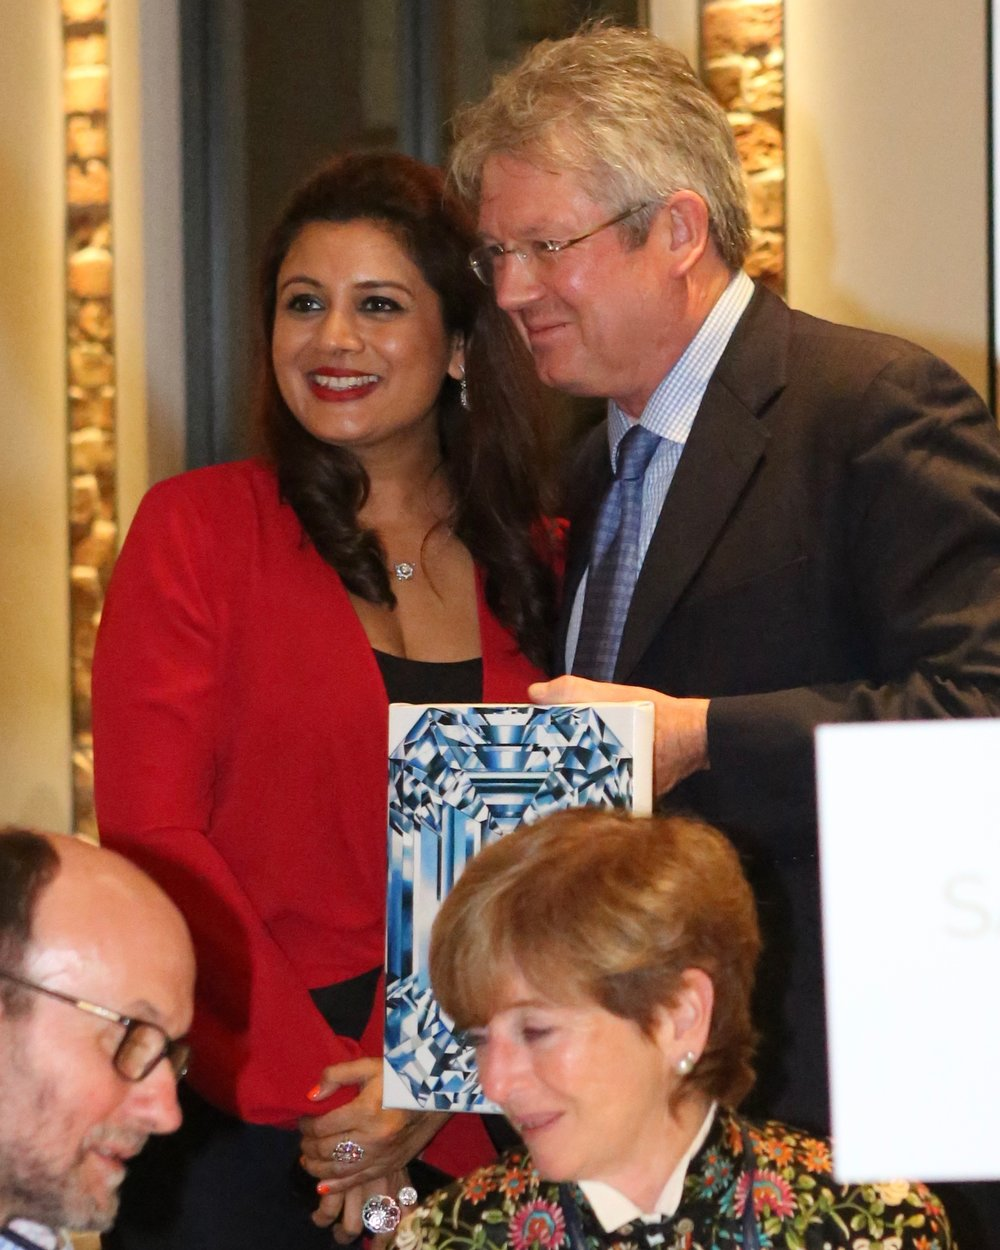 Wonderful Mark Cullinan of Cullinan Diamonds (his great grandfather was the owner of the famous Cullinan Mike), is now the owner of Reena Ahluwalia's blue diamond painting.